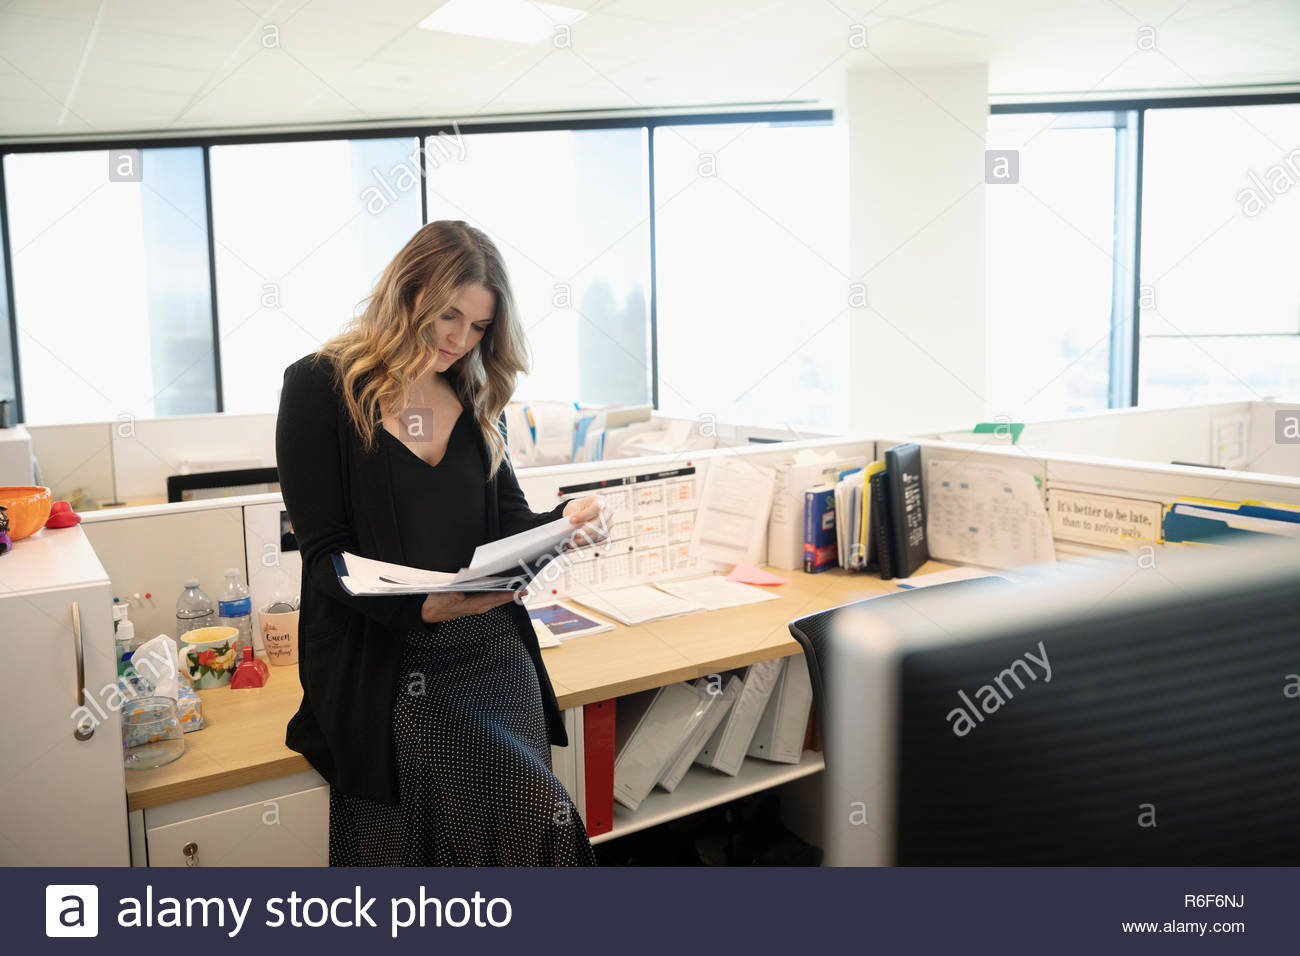 Businesswoman reviewing paperwork in office cubicle - Stock Image